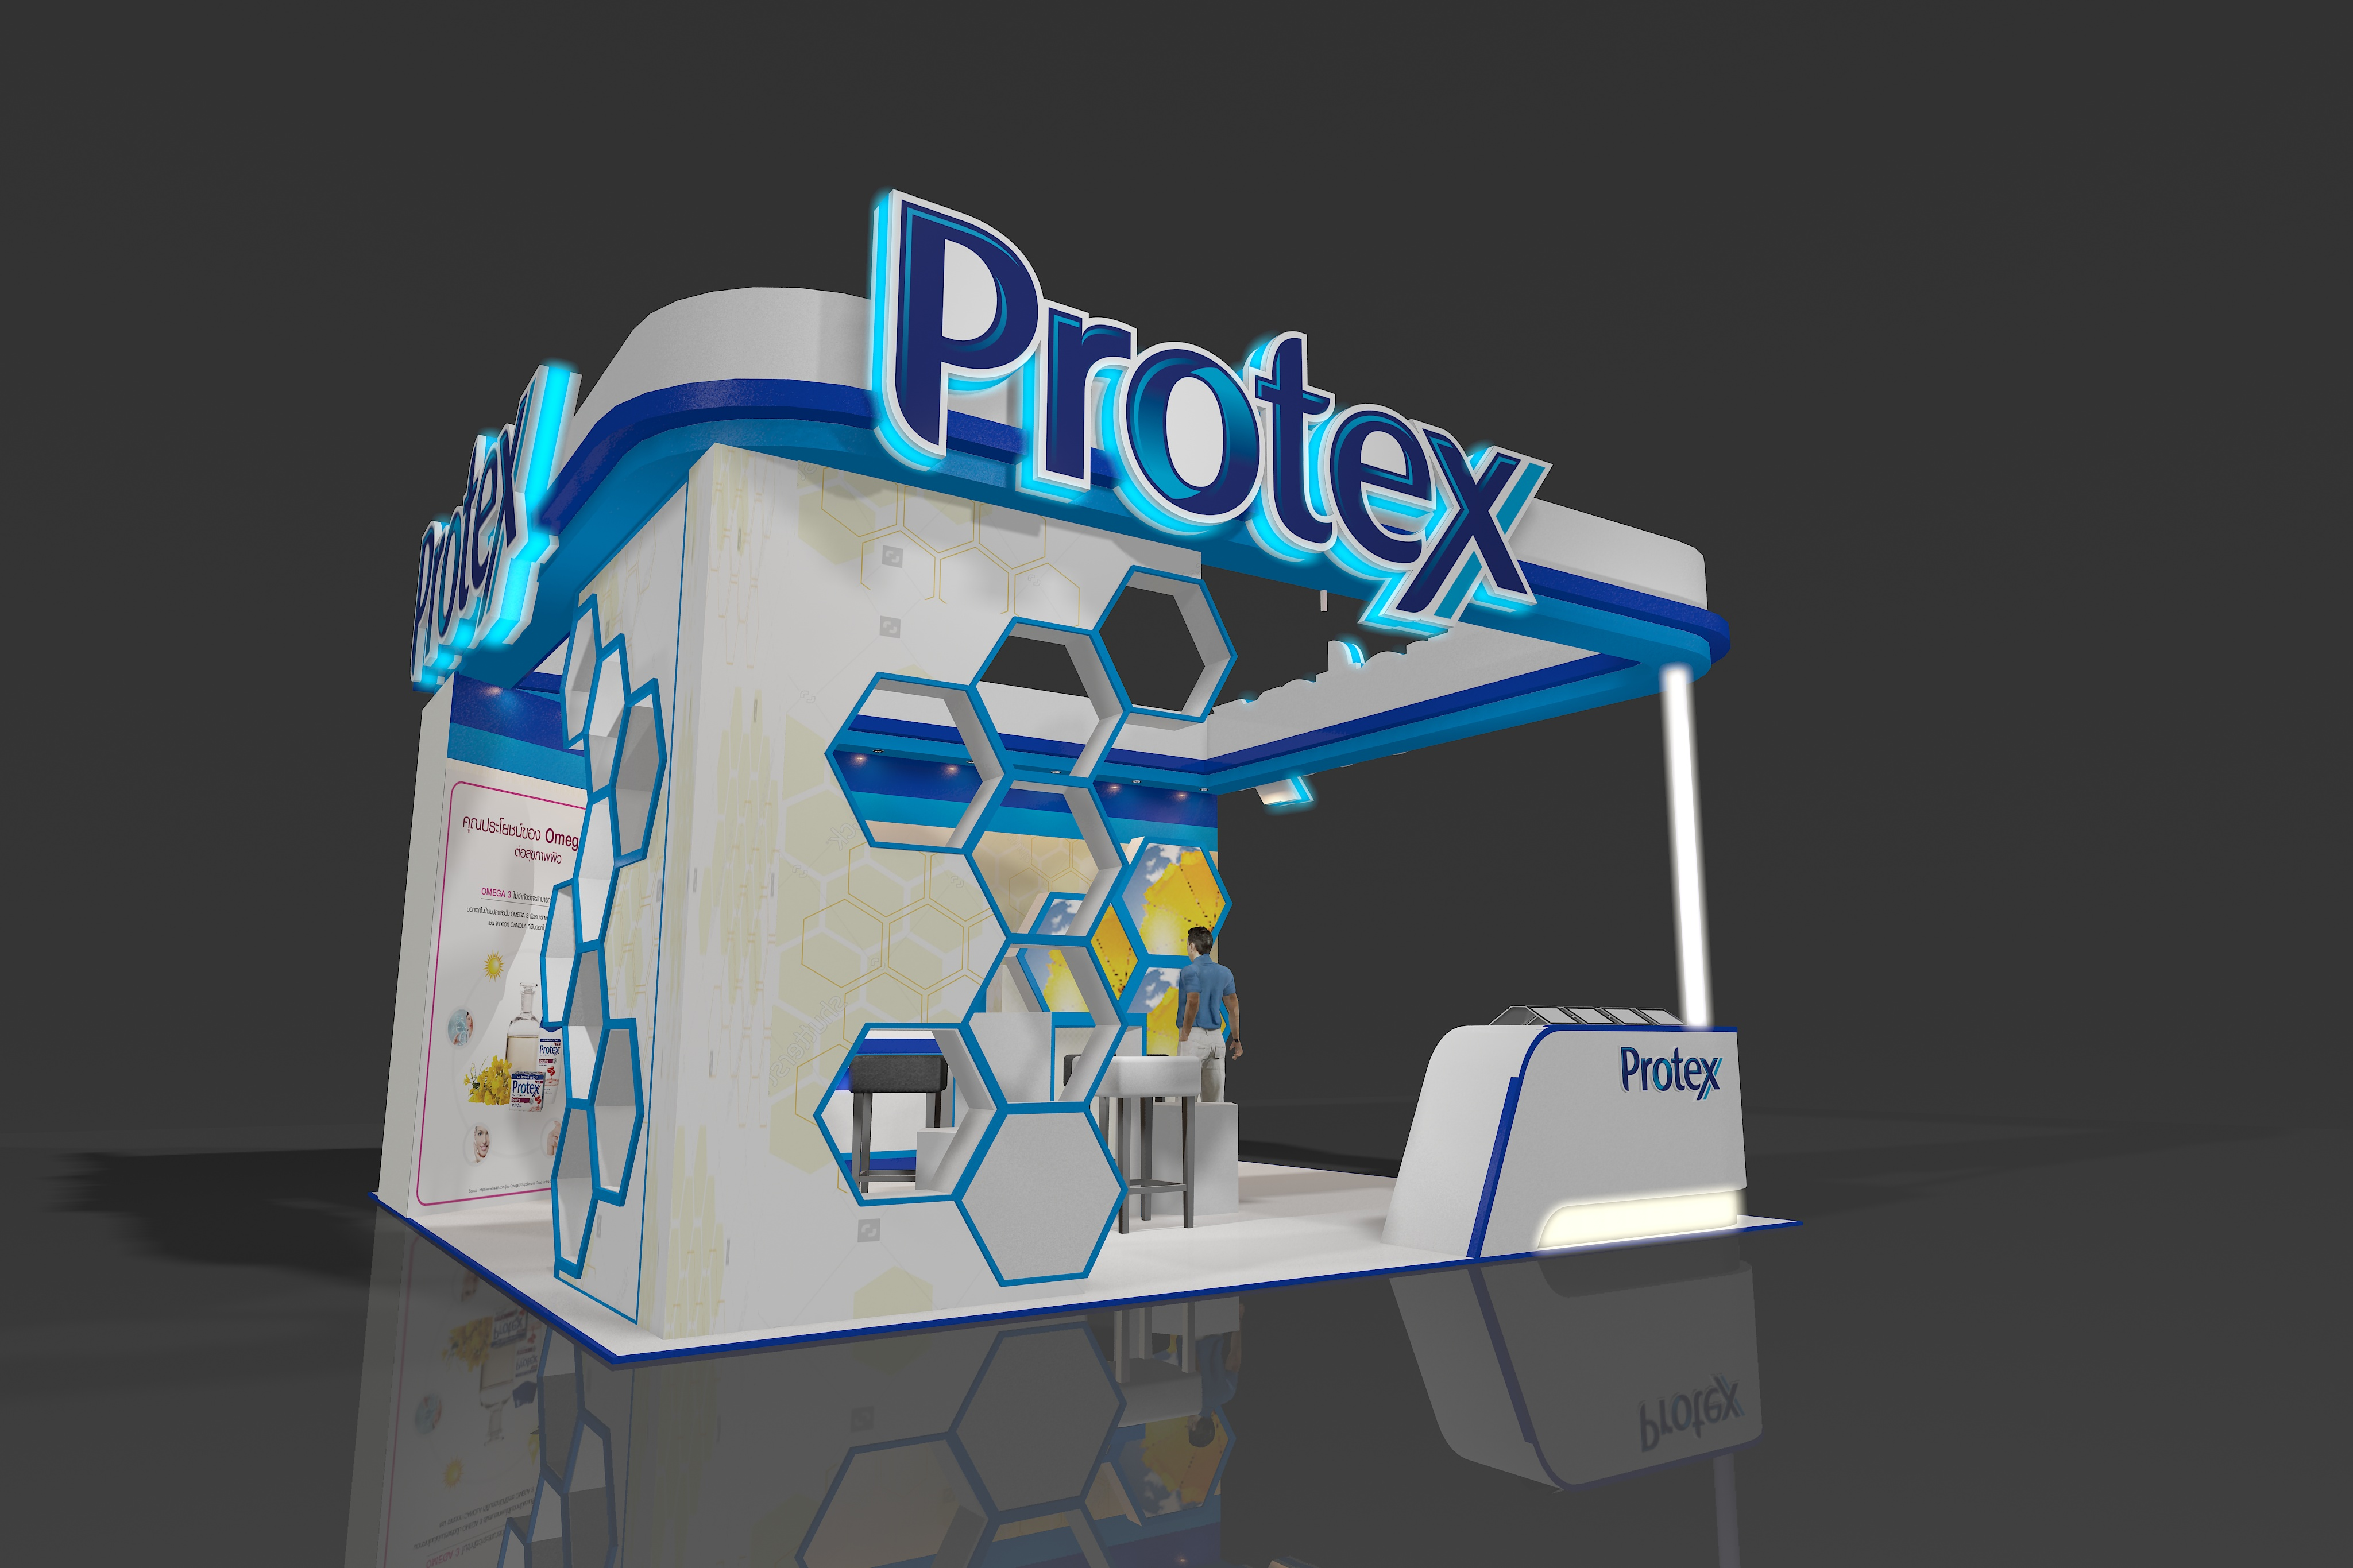 Protex Booth Design - CHAWAWA One Stop Marketing Service Event